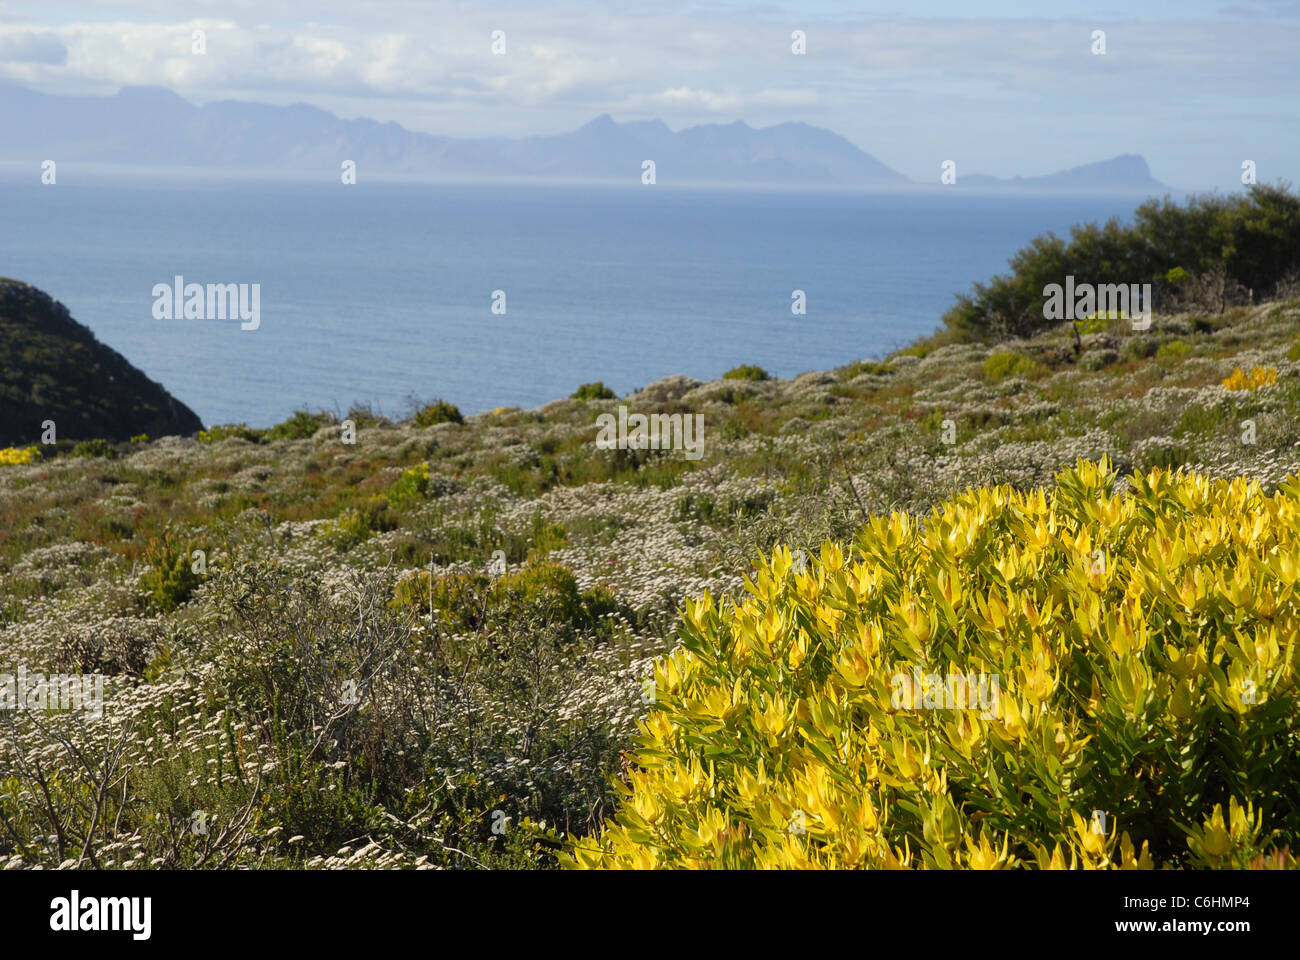 coastal vegetation, Cape Point, Cape of Good Hope, Table Mountain National Park, Western Cape, South Africa - Stock Image